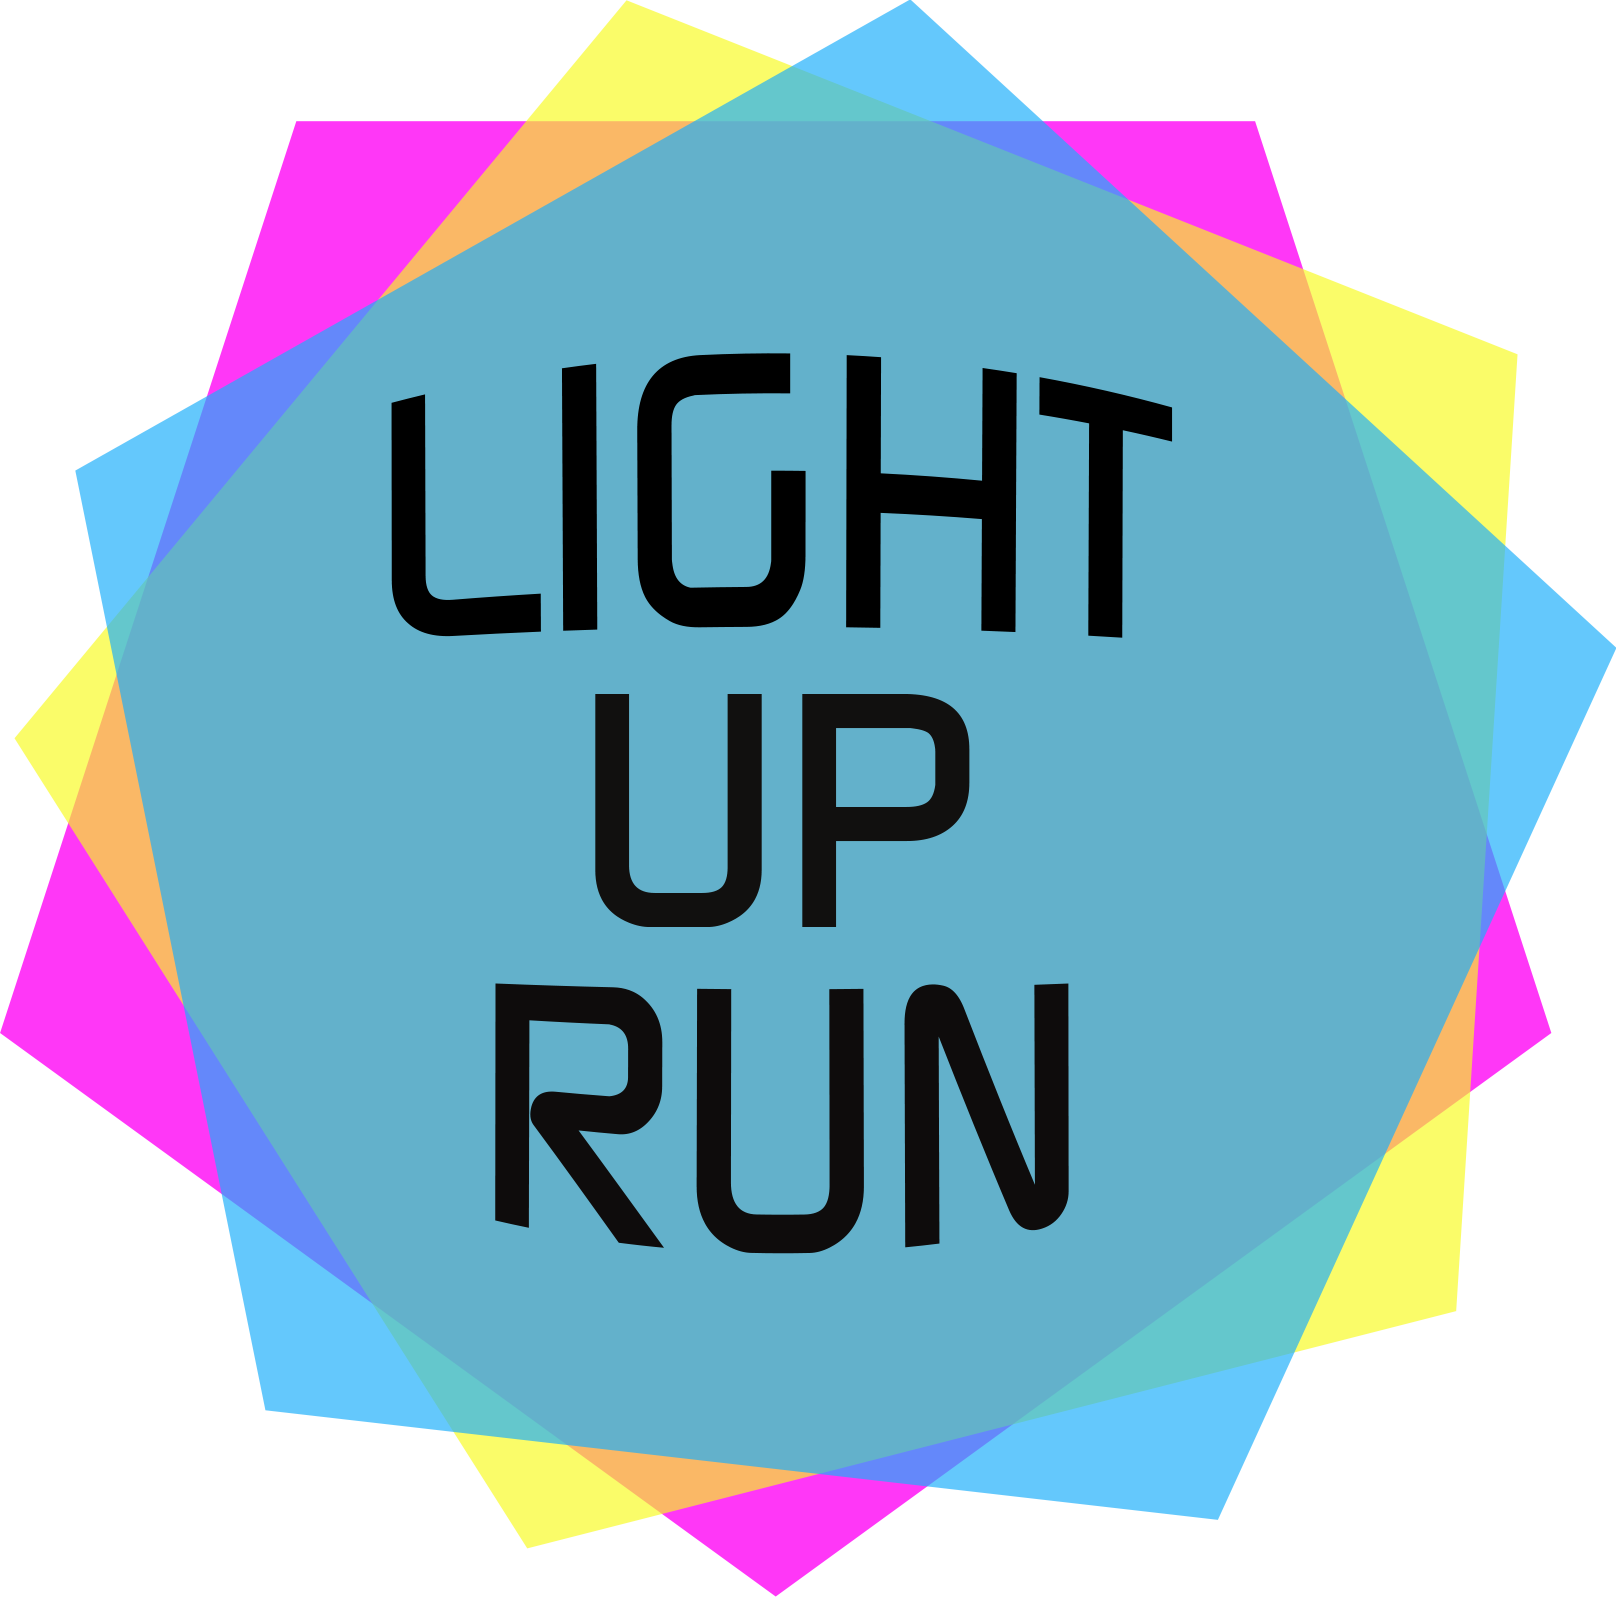 Light Up Run